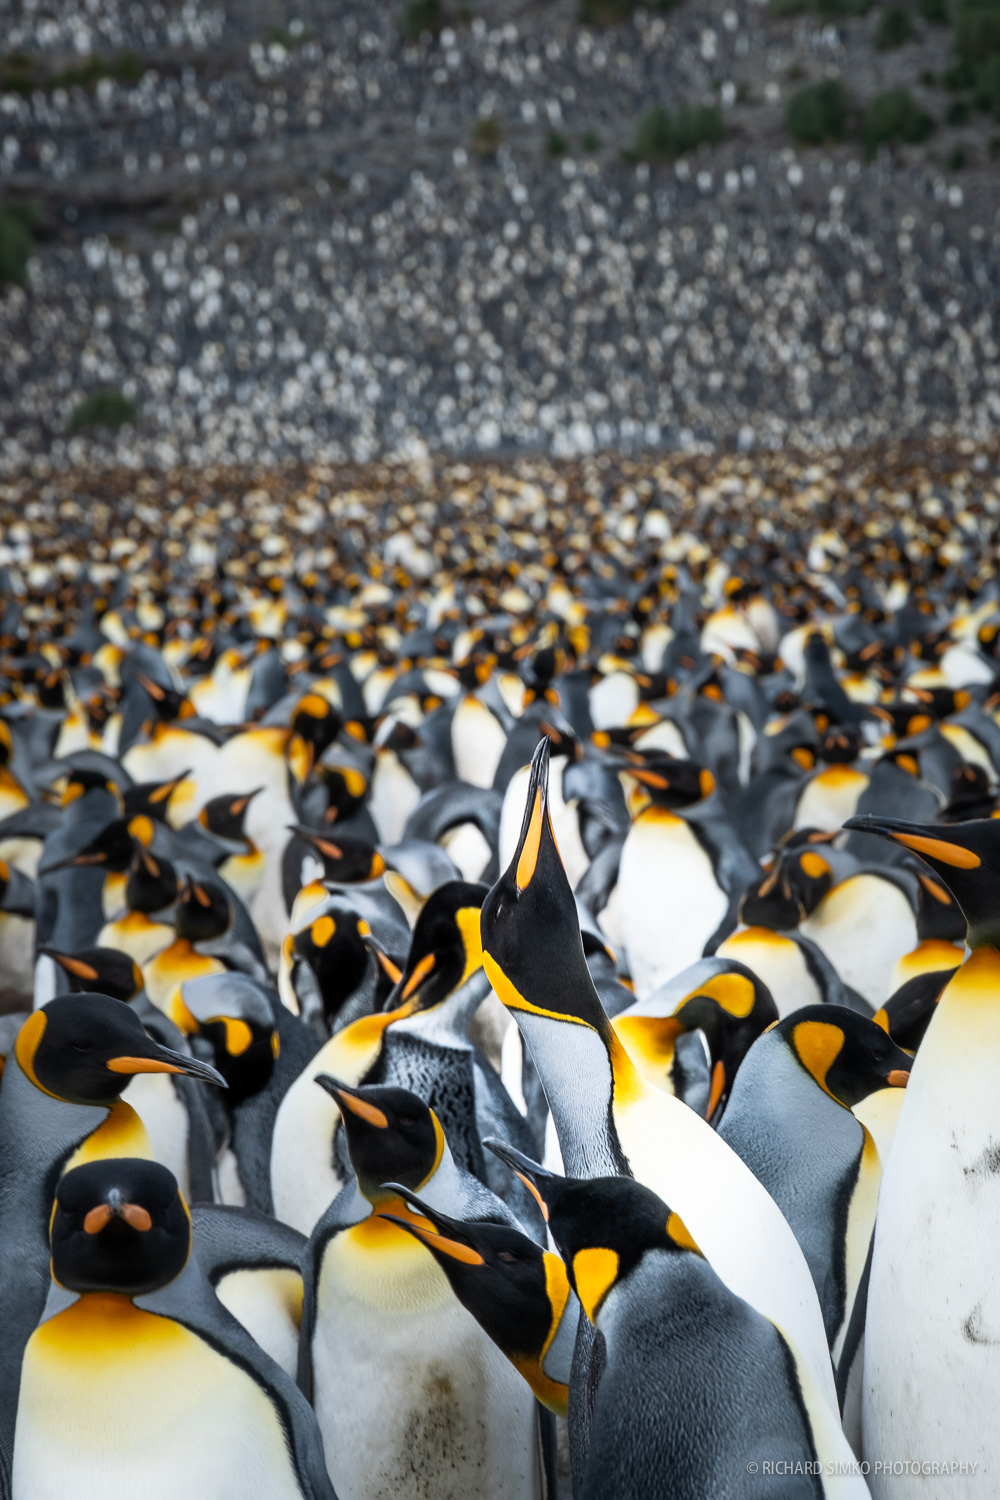 King penguin colony at Salisbury Plane in South Georgia is the second largest colony with about 80.000 birds.